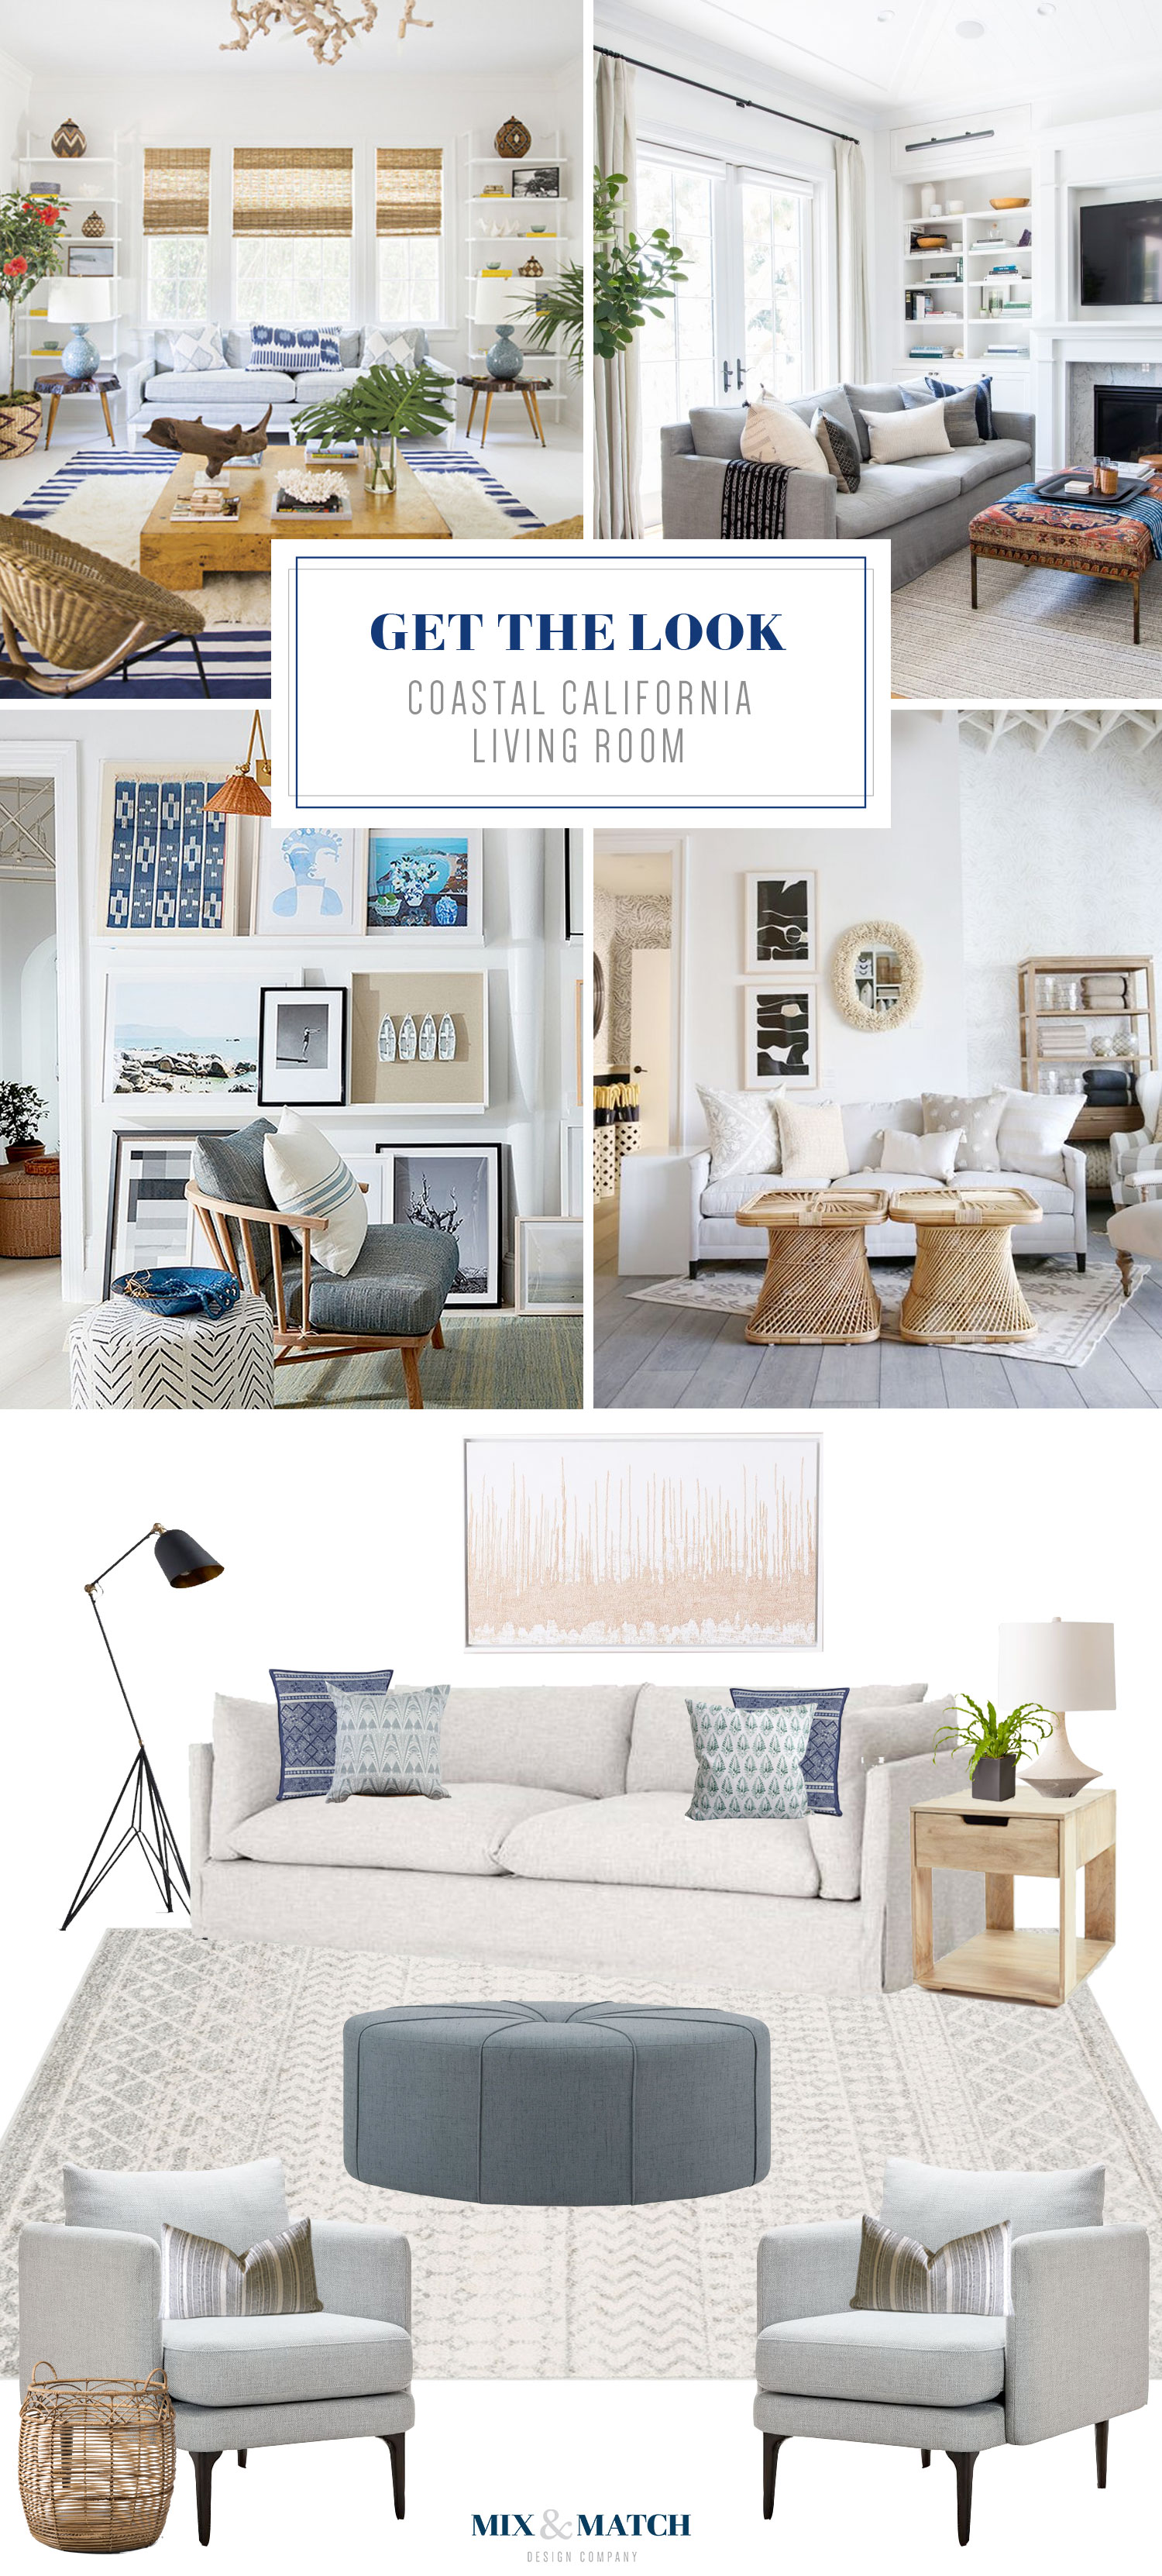 Get the look of this coastal California living room on the Mix & Match Design Company Blog. This neutral living room with slipcovered sofa, modern gray accent chairs, and natural wood accents feels laid back and casual.